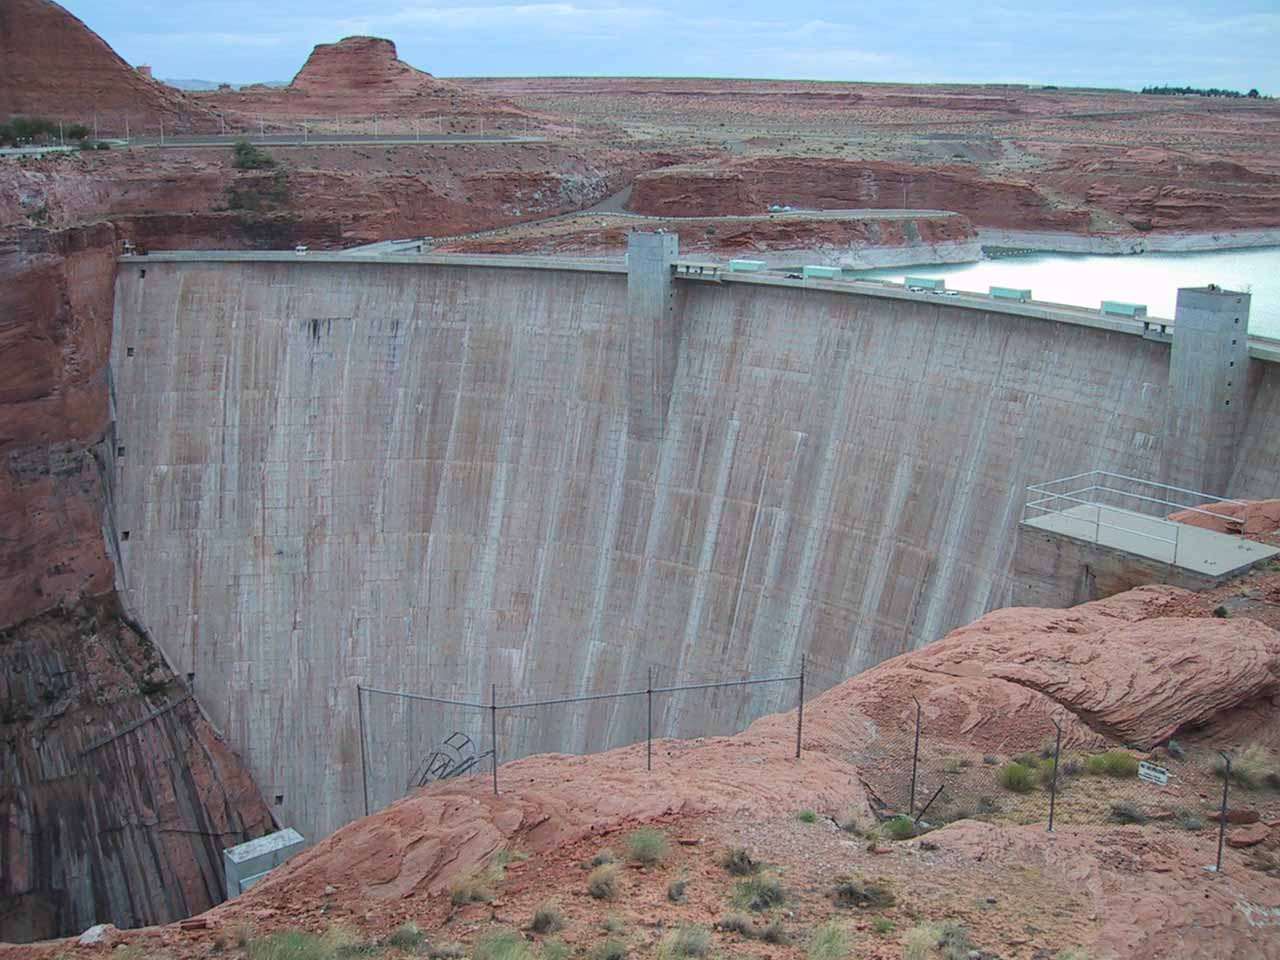 The dam responsible for Lake Powell